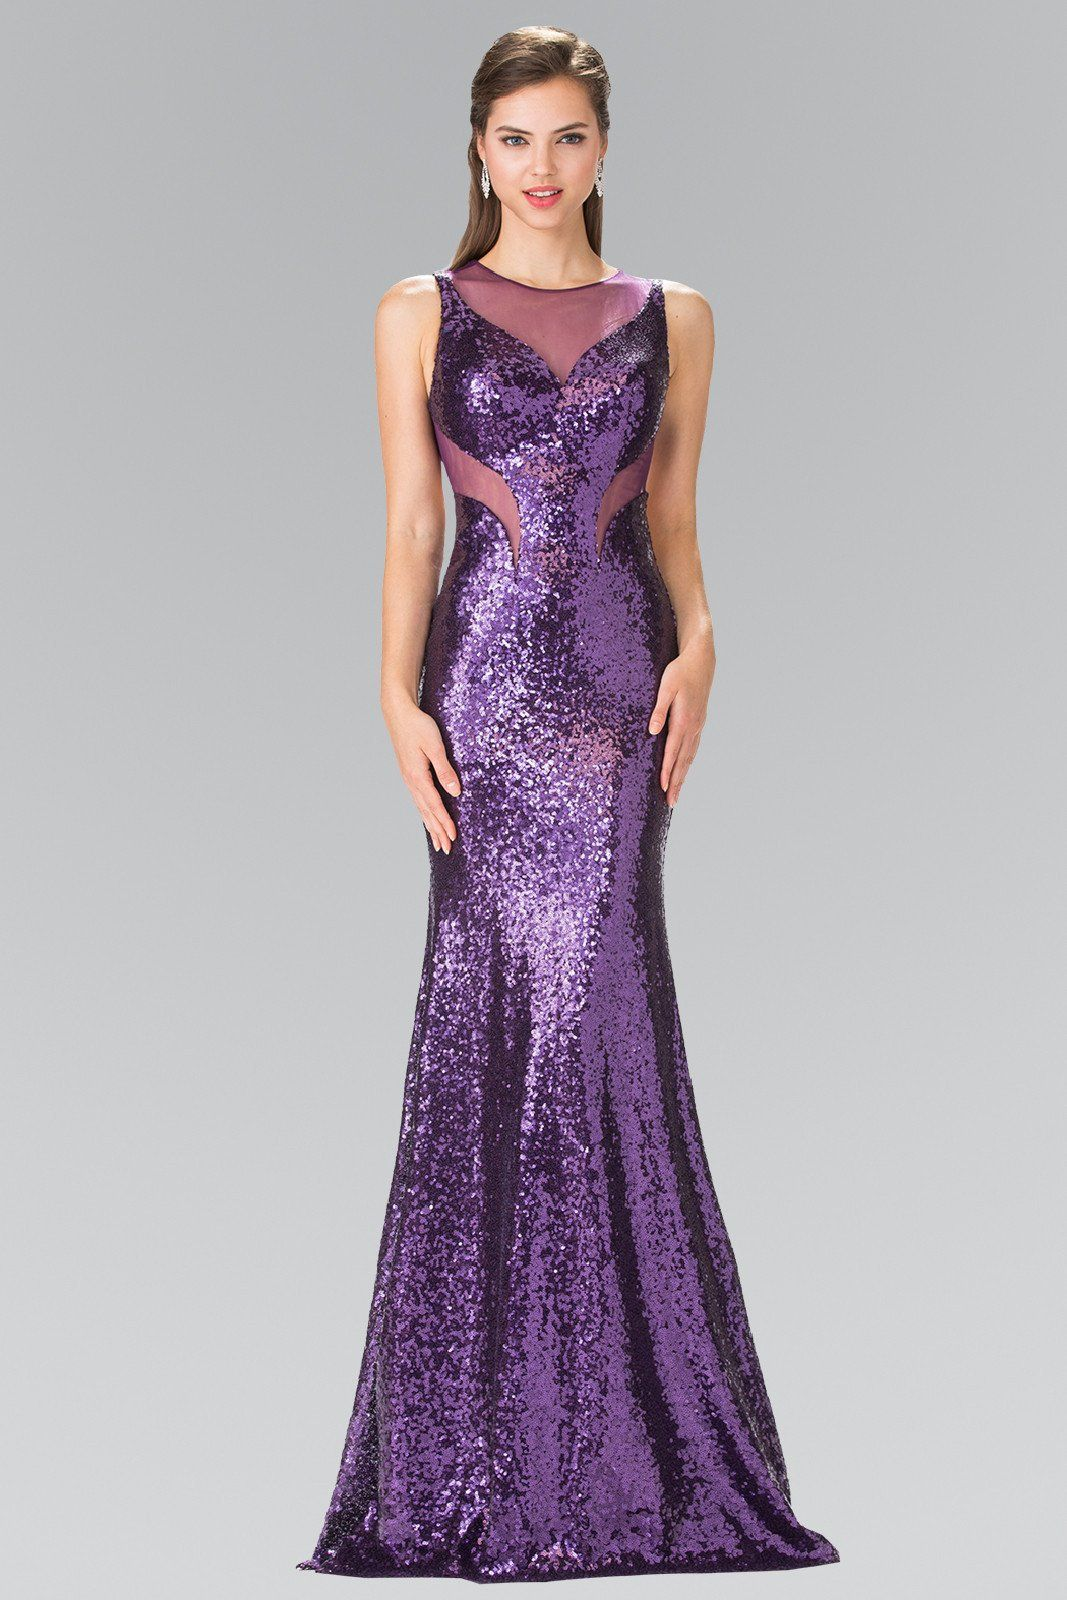 Sexy all over sequins dress gl prom dresss products